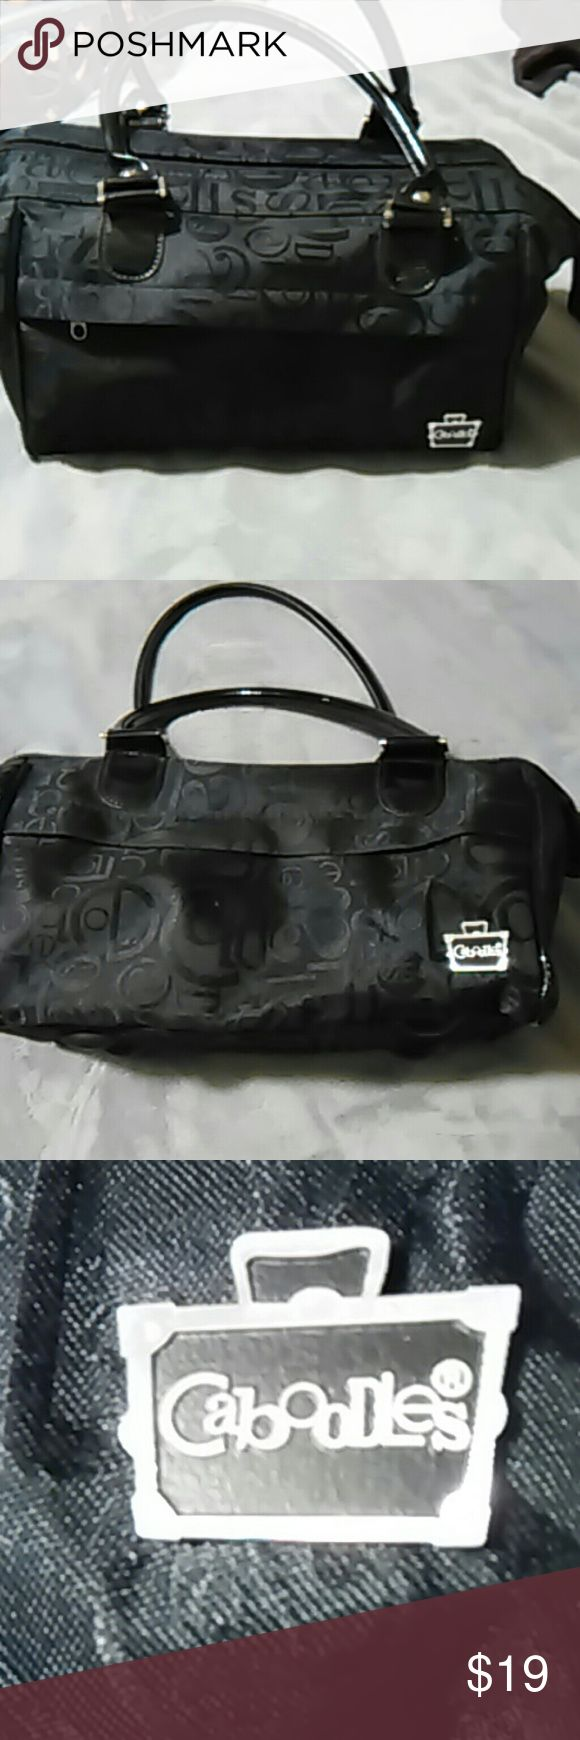 Caboodles signature travel/makeup bag This bag has 2 outside pockets & numerous brush HOLDERS and compartment inside. This bag is in EXCELLENT condition. Please view ALL photos. Thank you for stopping by . Caboodles Bags Cosmetic Bags & Cases